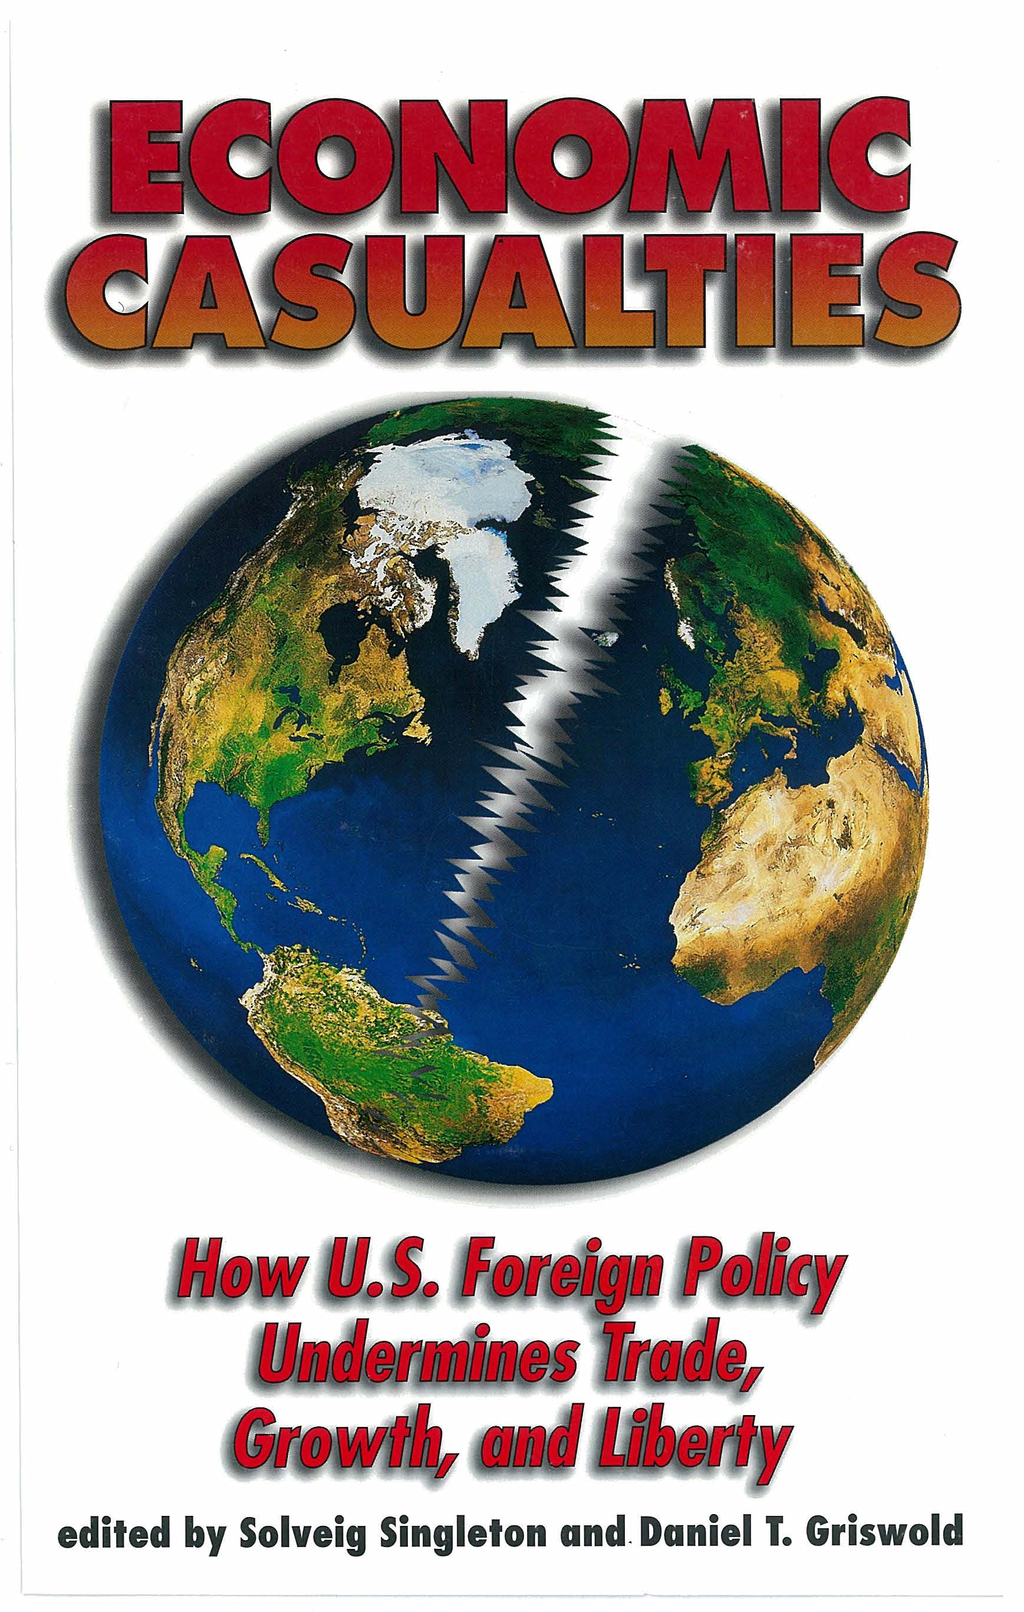 Economic Casualties: How U.S. Foreign Policy Undermines Trade, Growth and Liberty By: Daniel T. Griswold,Solveig Singleton